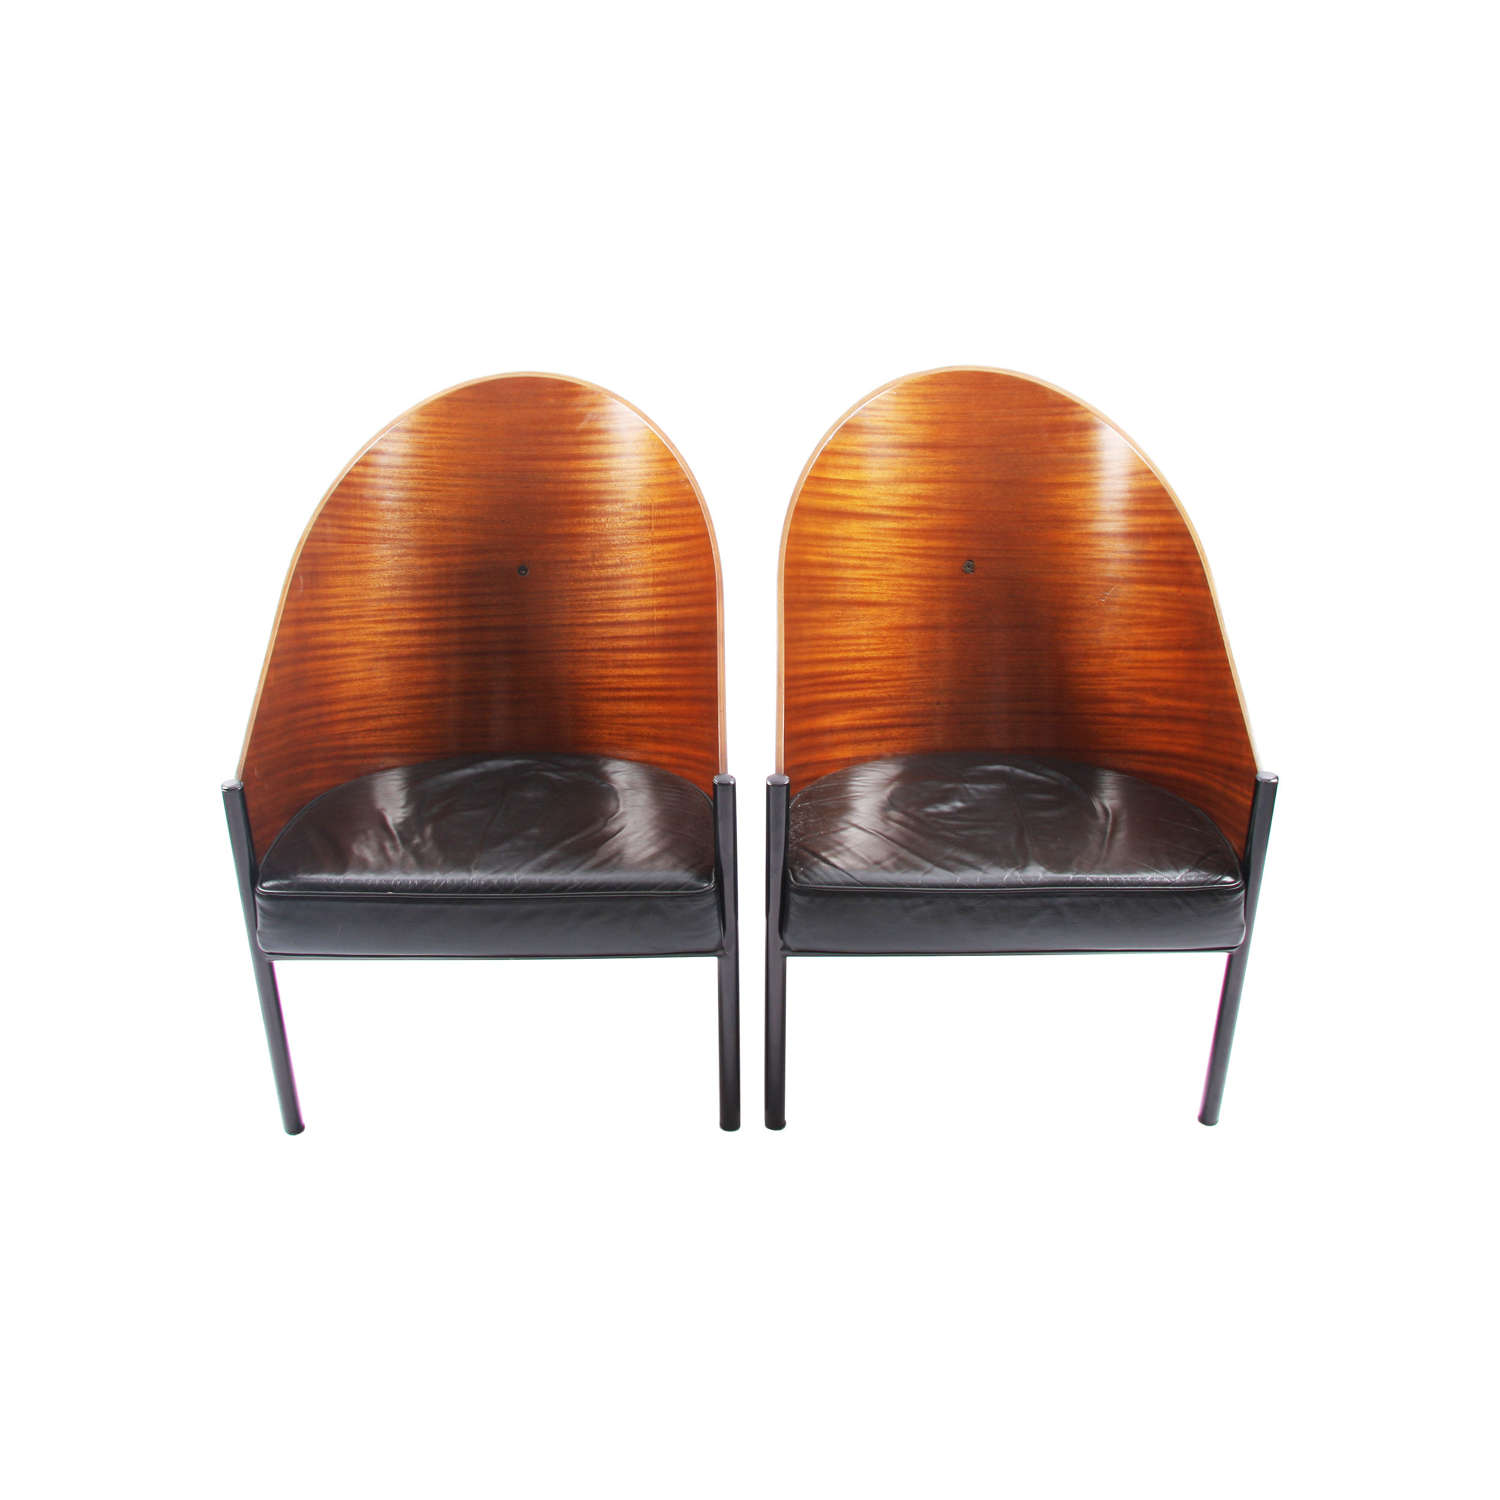 Pair of Phillippe Starck Wood and Leather Chairs